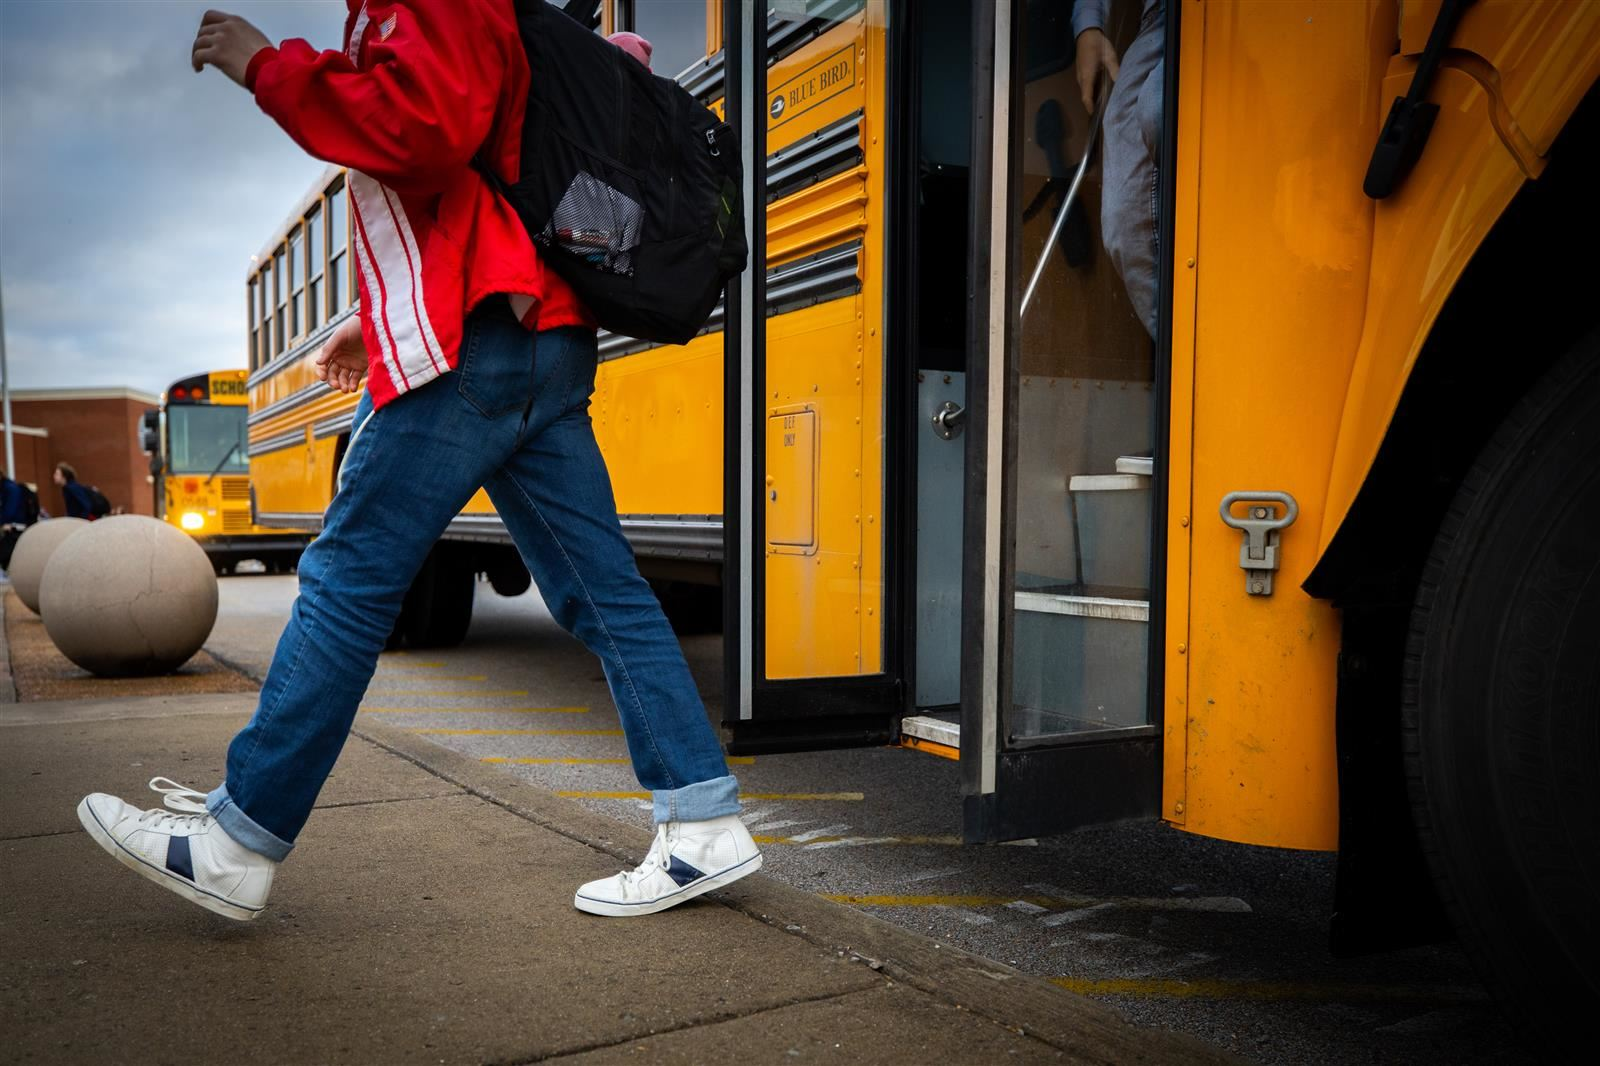 A boy walks off a school bus.